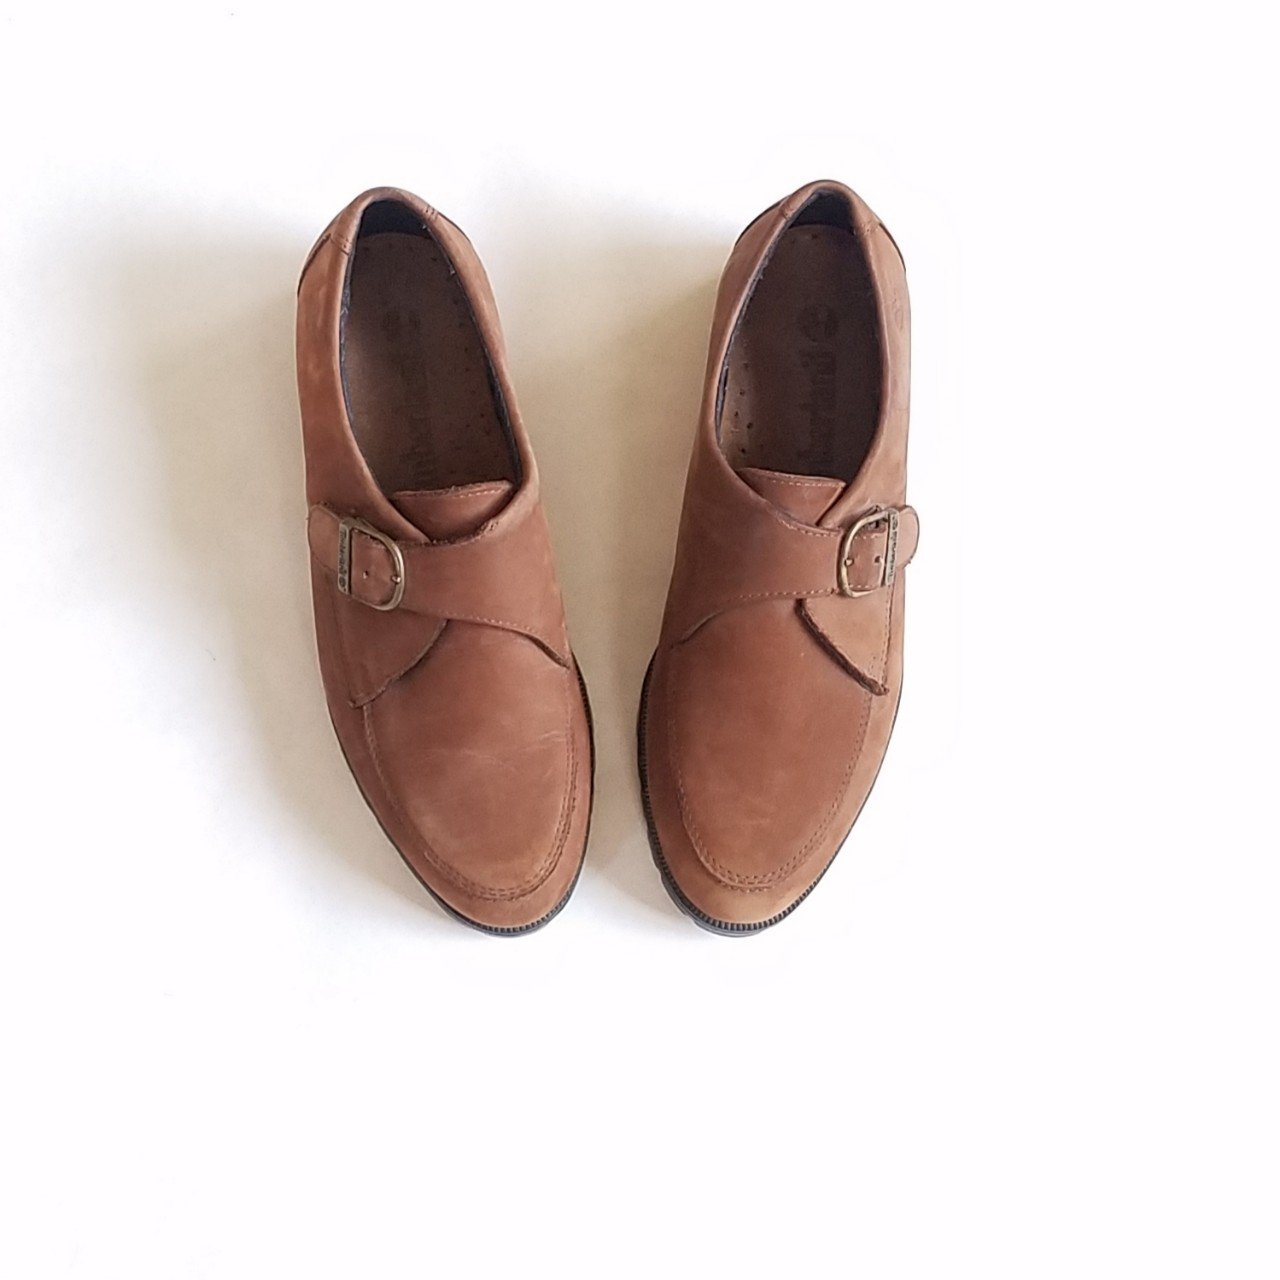 8c4fe6f6228 Brand  Timberland Monk Strap Oxfords